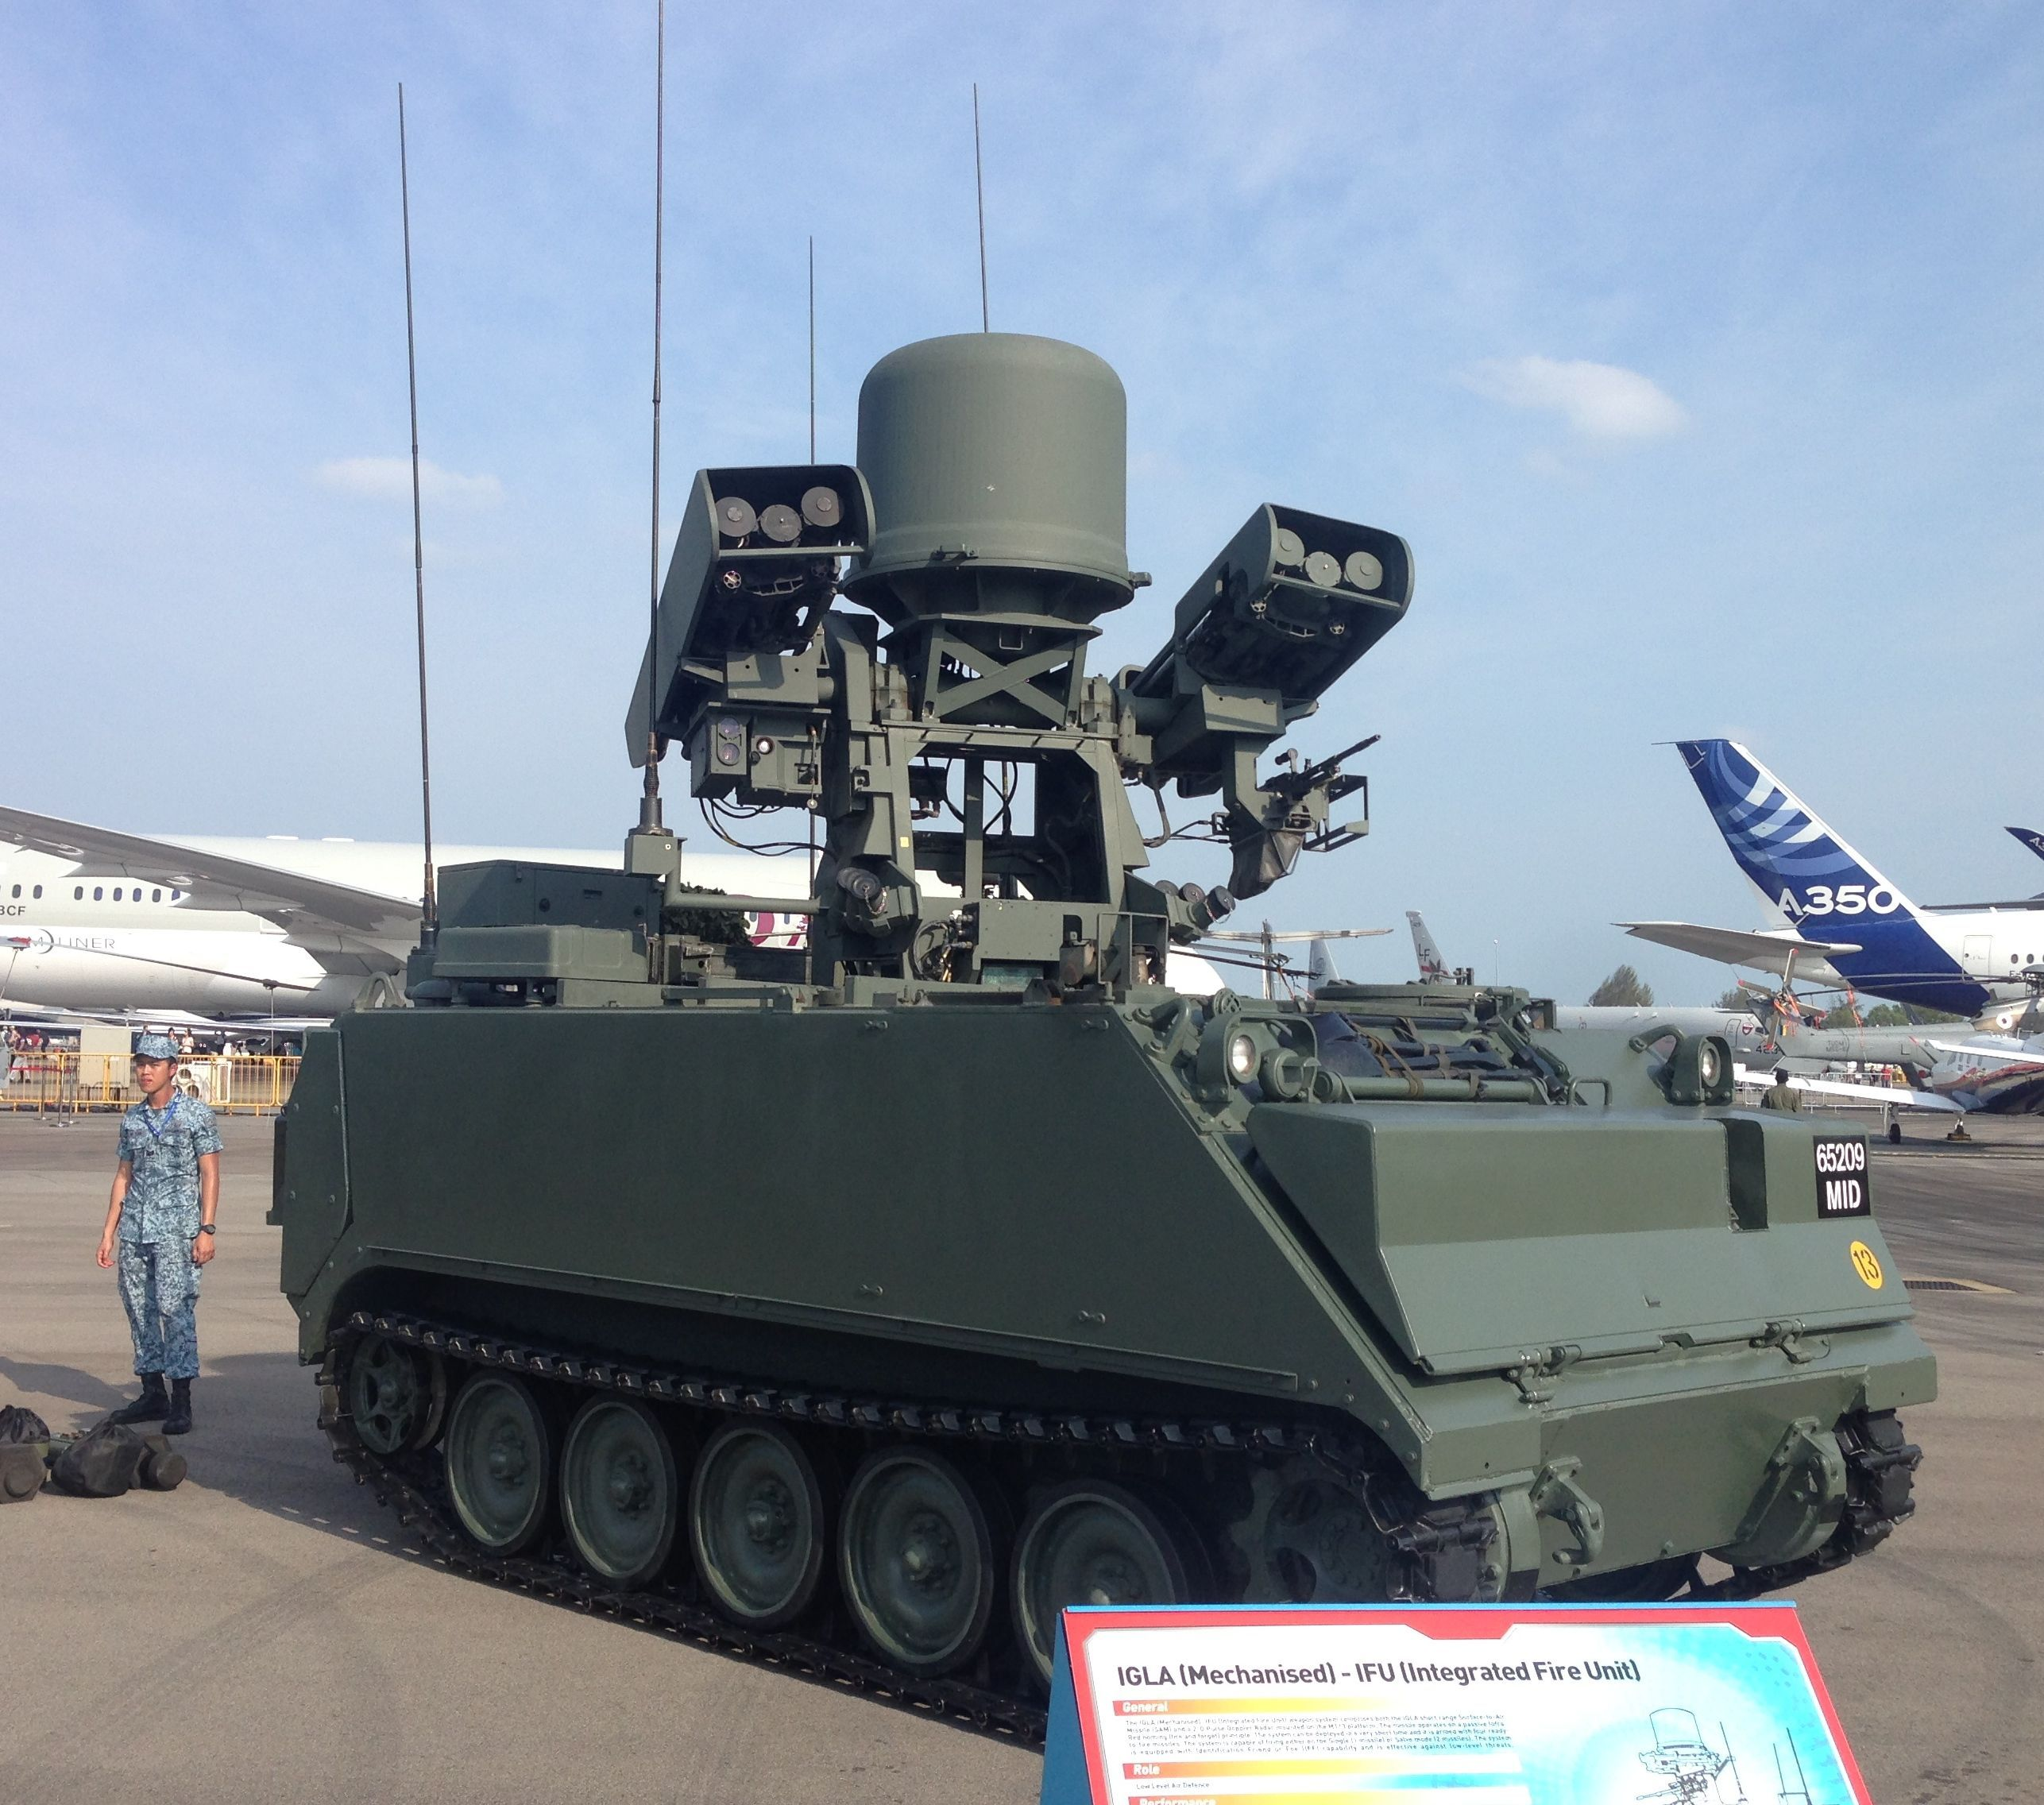 Russian missiles, Singaporean fire control mounted on a US